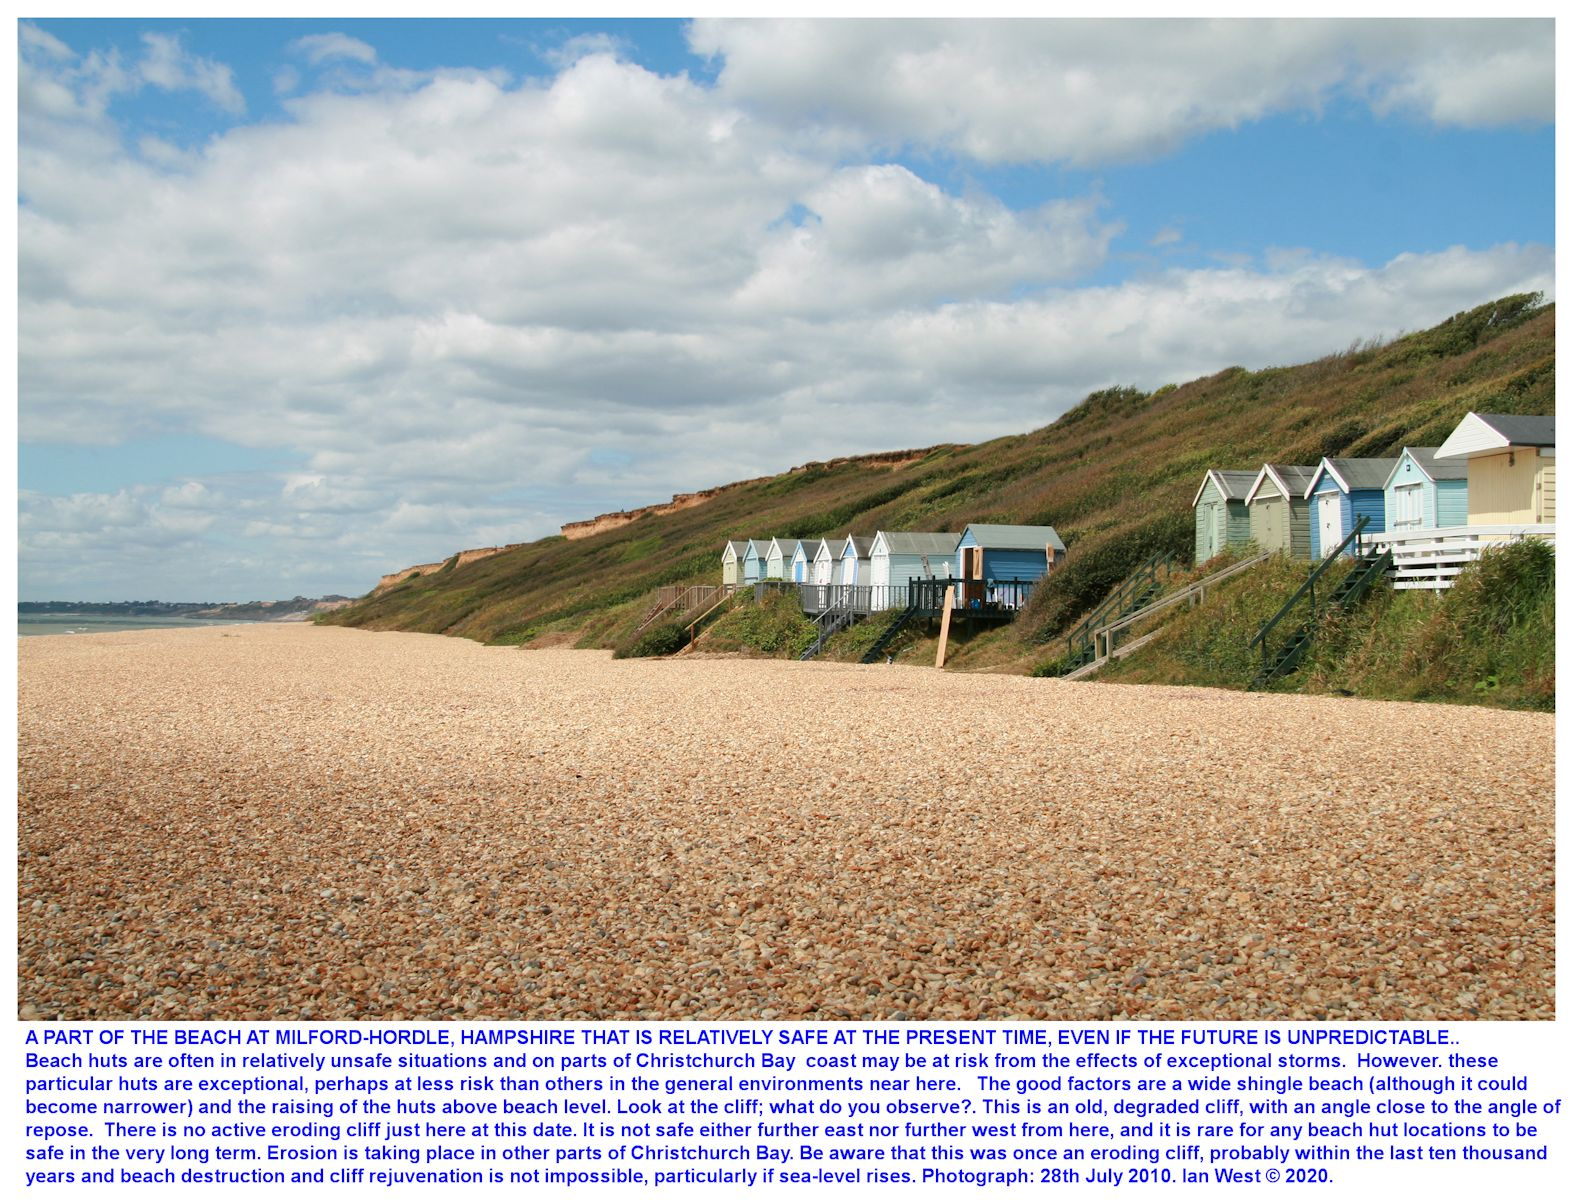 Beach huts in 2020 at a particular place in Milford-Hordle area where the shingle beach is very wide, this is just east of the main Hordle Cliff, with its narrow beach and eroding cliffs